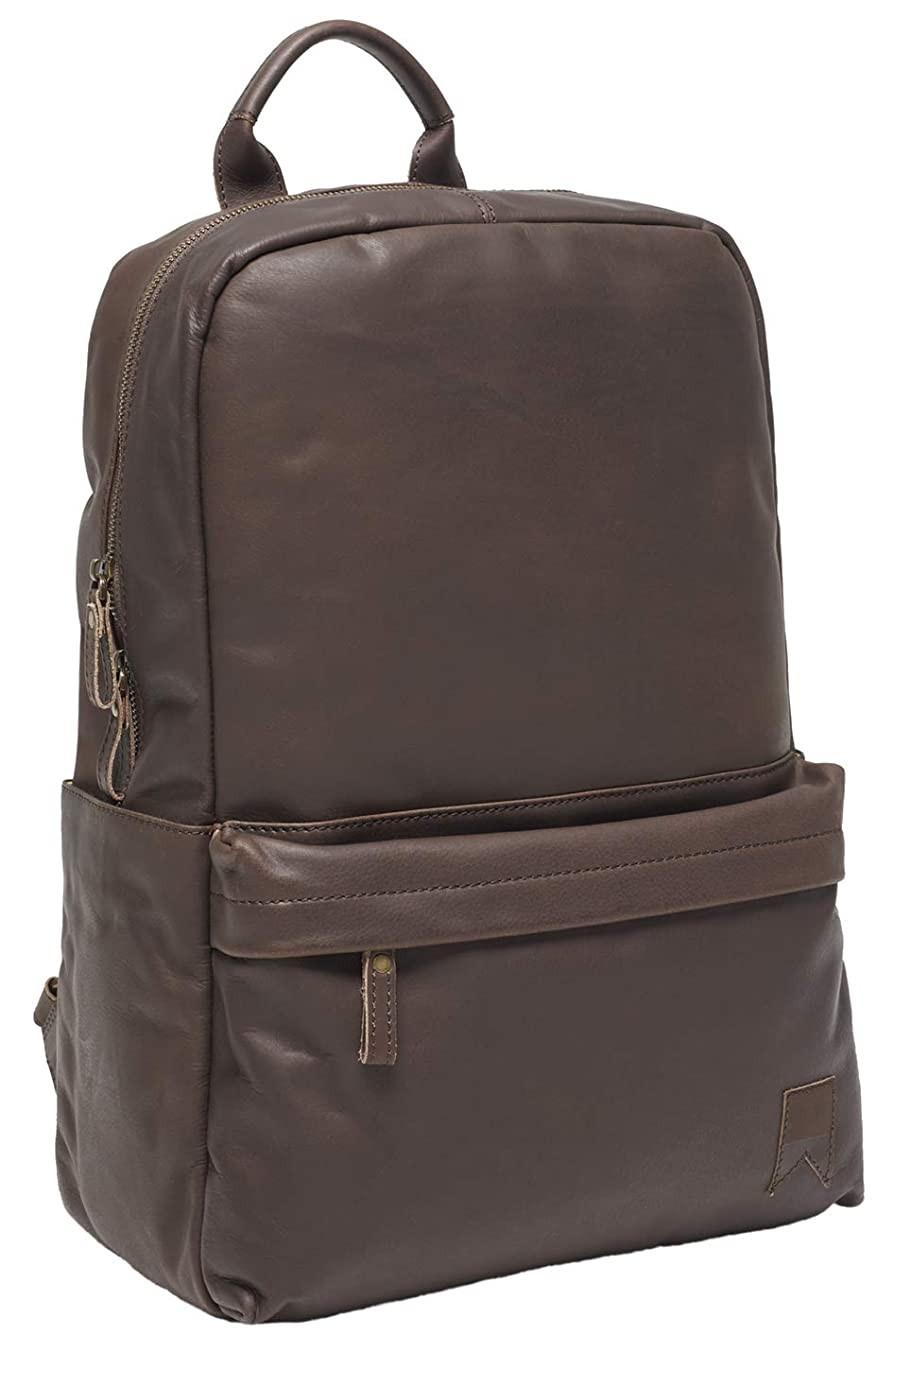 Navali Cooper Genuine Vintage Leather Backpack with Padded Laptop Compartment and Luggage Slip - Brown